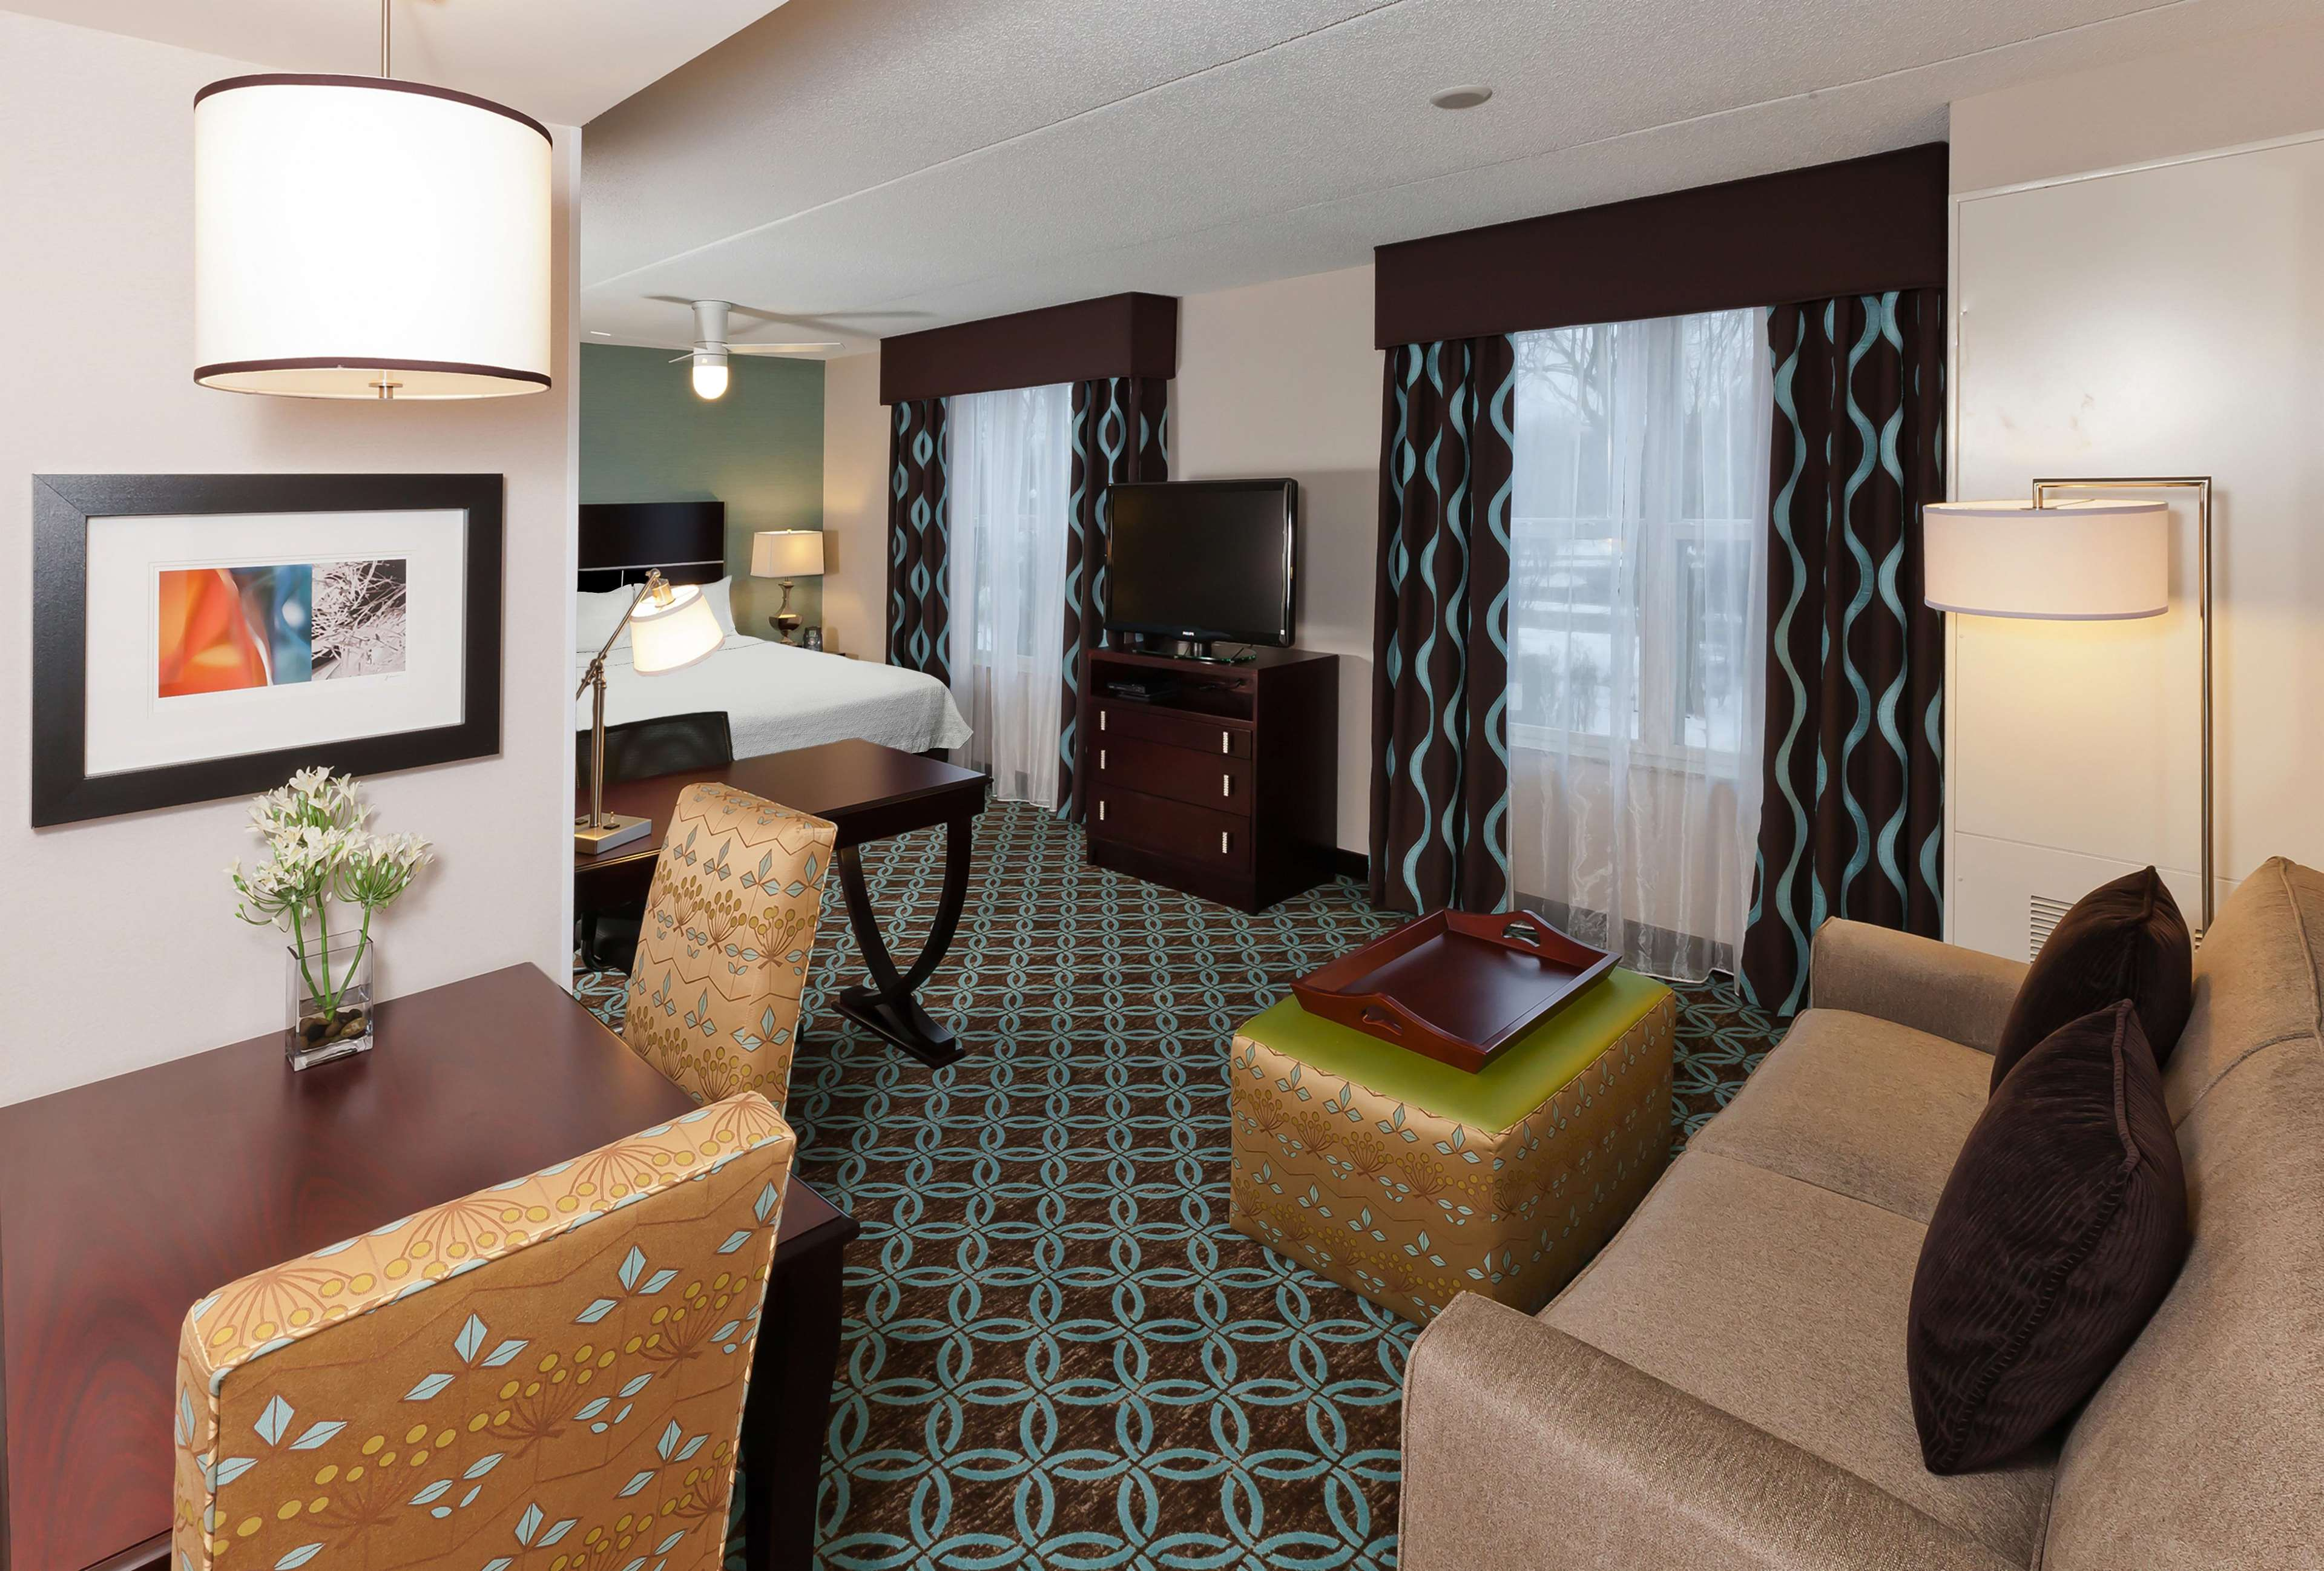 Homewood Suites by Hilton Boston/Canton, MA image 18